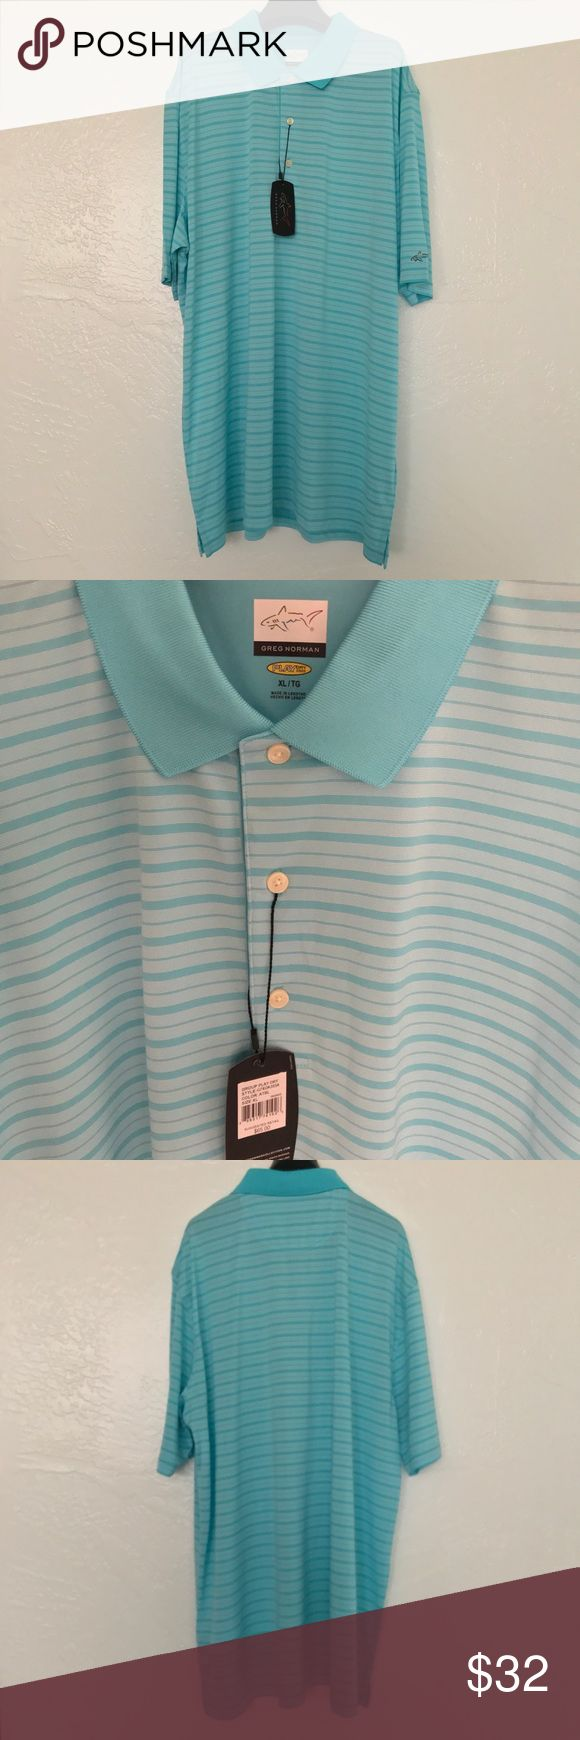 NWT Greg Norman Signature Series Golf Polo Shirt NWT Greg Norman Signature Series Striped Collared Light Blue and White Golf Polo Shirt Size XL MSRP $65  Reasonable offers accepted! 20% bundle discount! Smoke- & pet-free home Any questions? Just ask! Greg Norman Shirts Polos